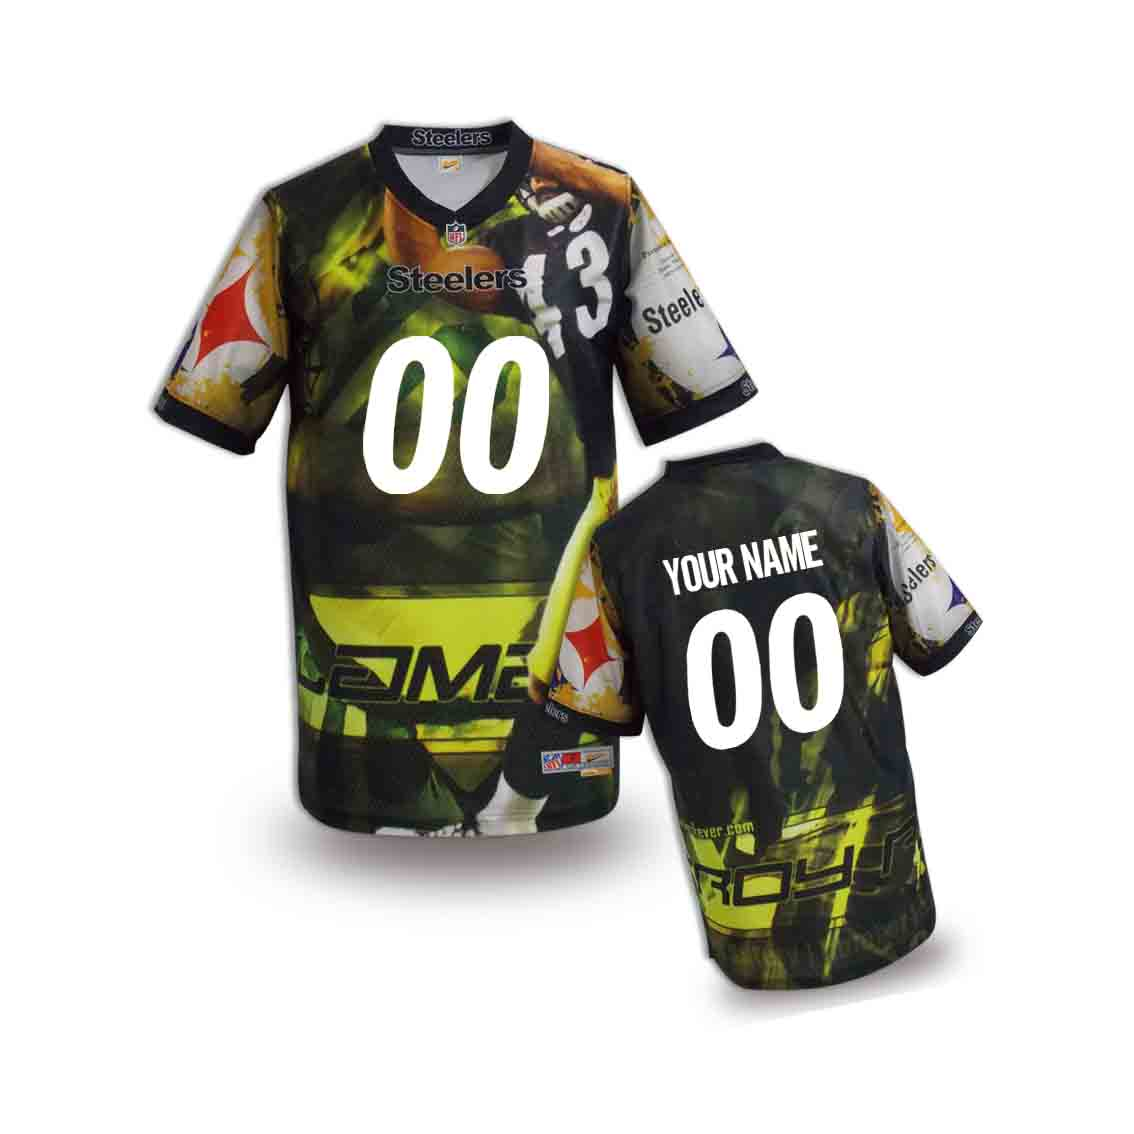 Nike Steelers Customized Fashion Stitched Youth Jerseys06